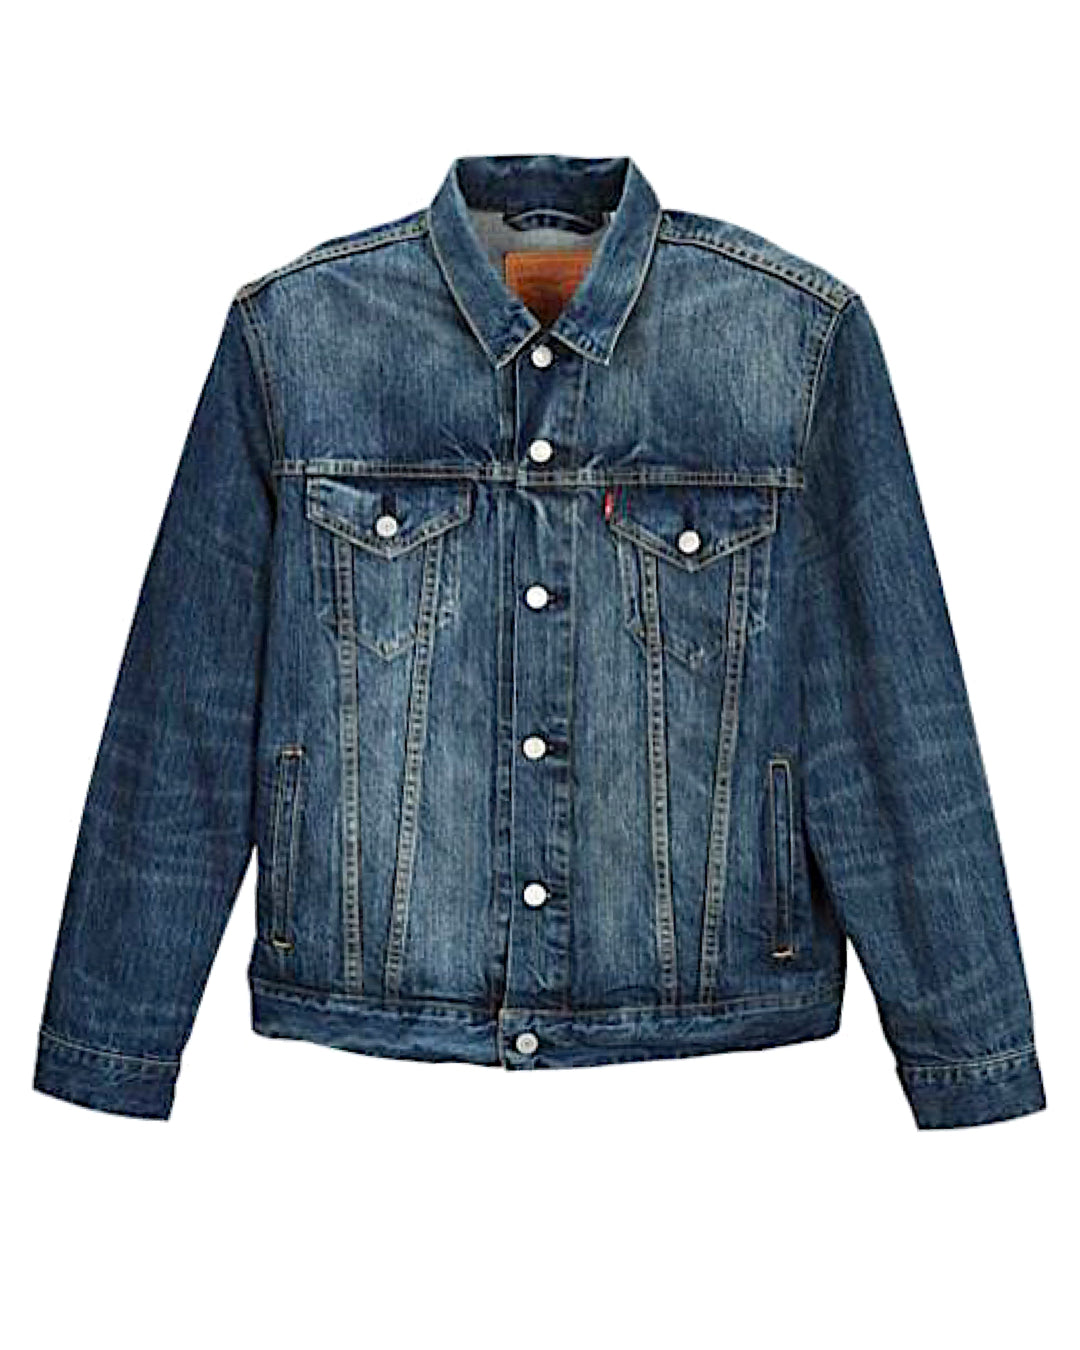 Cleveland - City of Champions - Denim Rocker Jacket - Whiskey Island Clothing